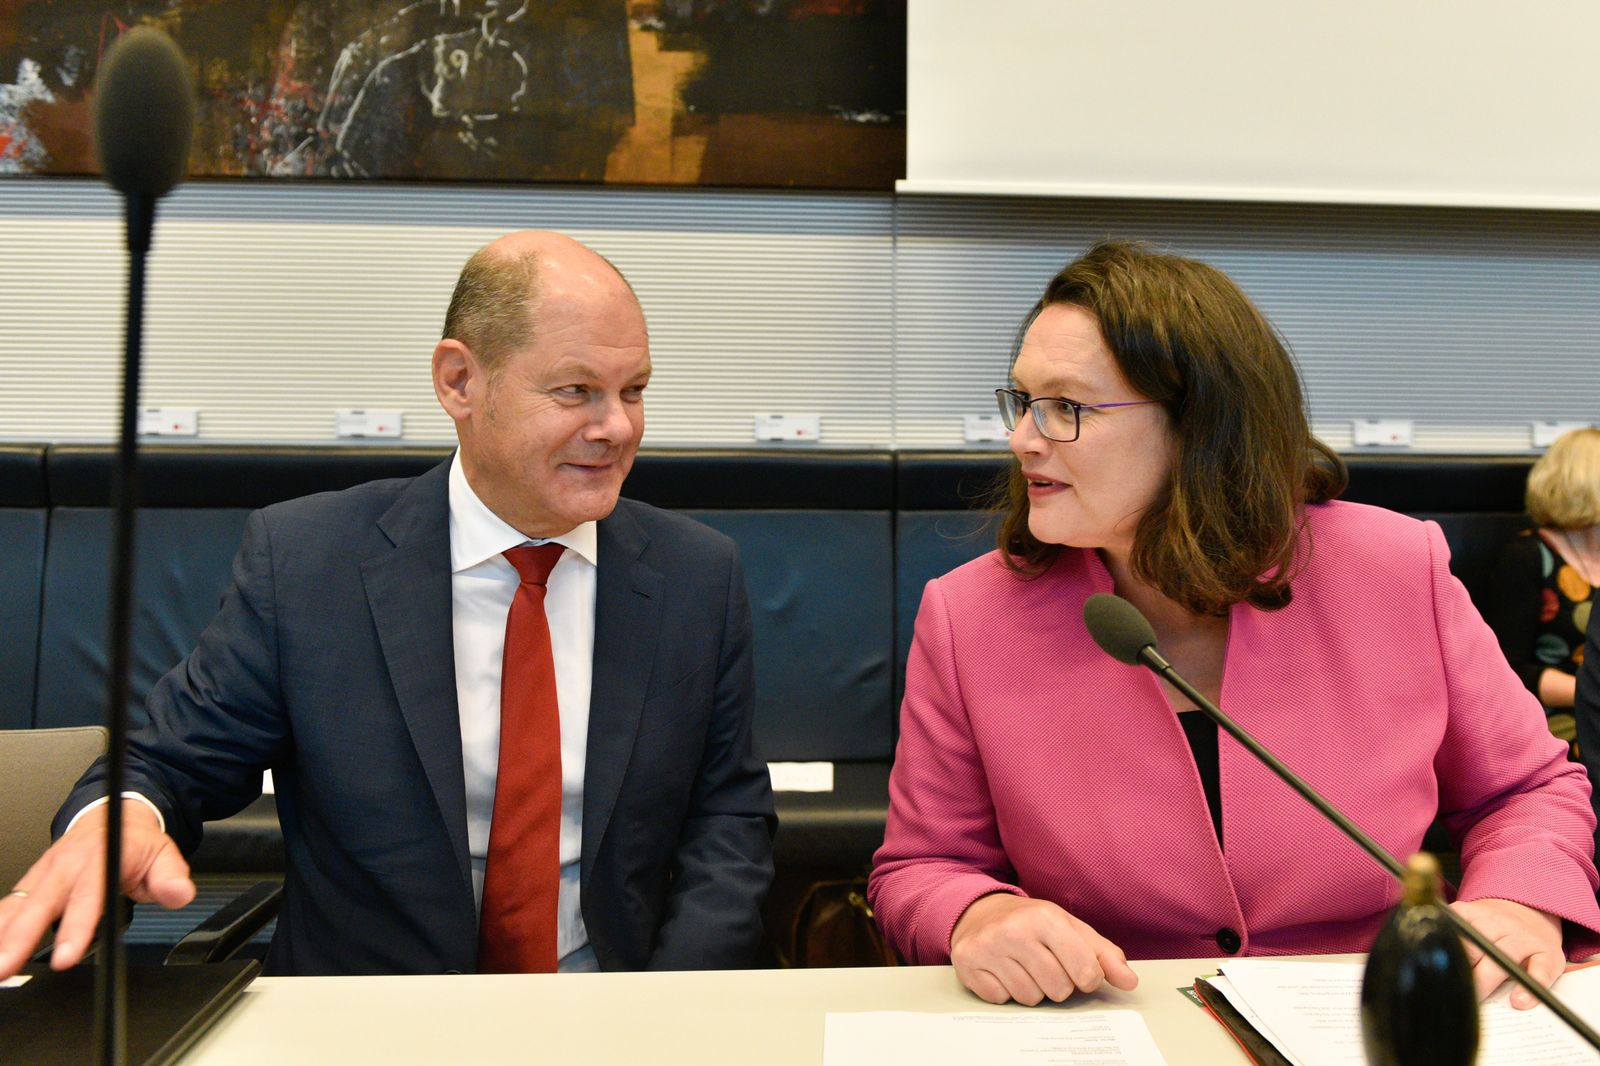 Andrea Nahles Olaf Scholz